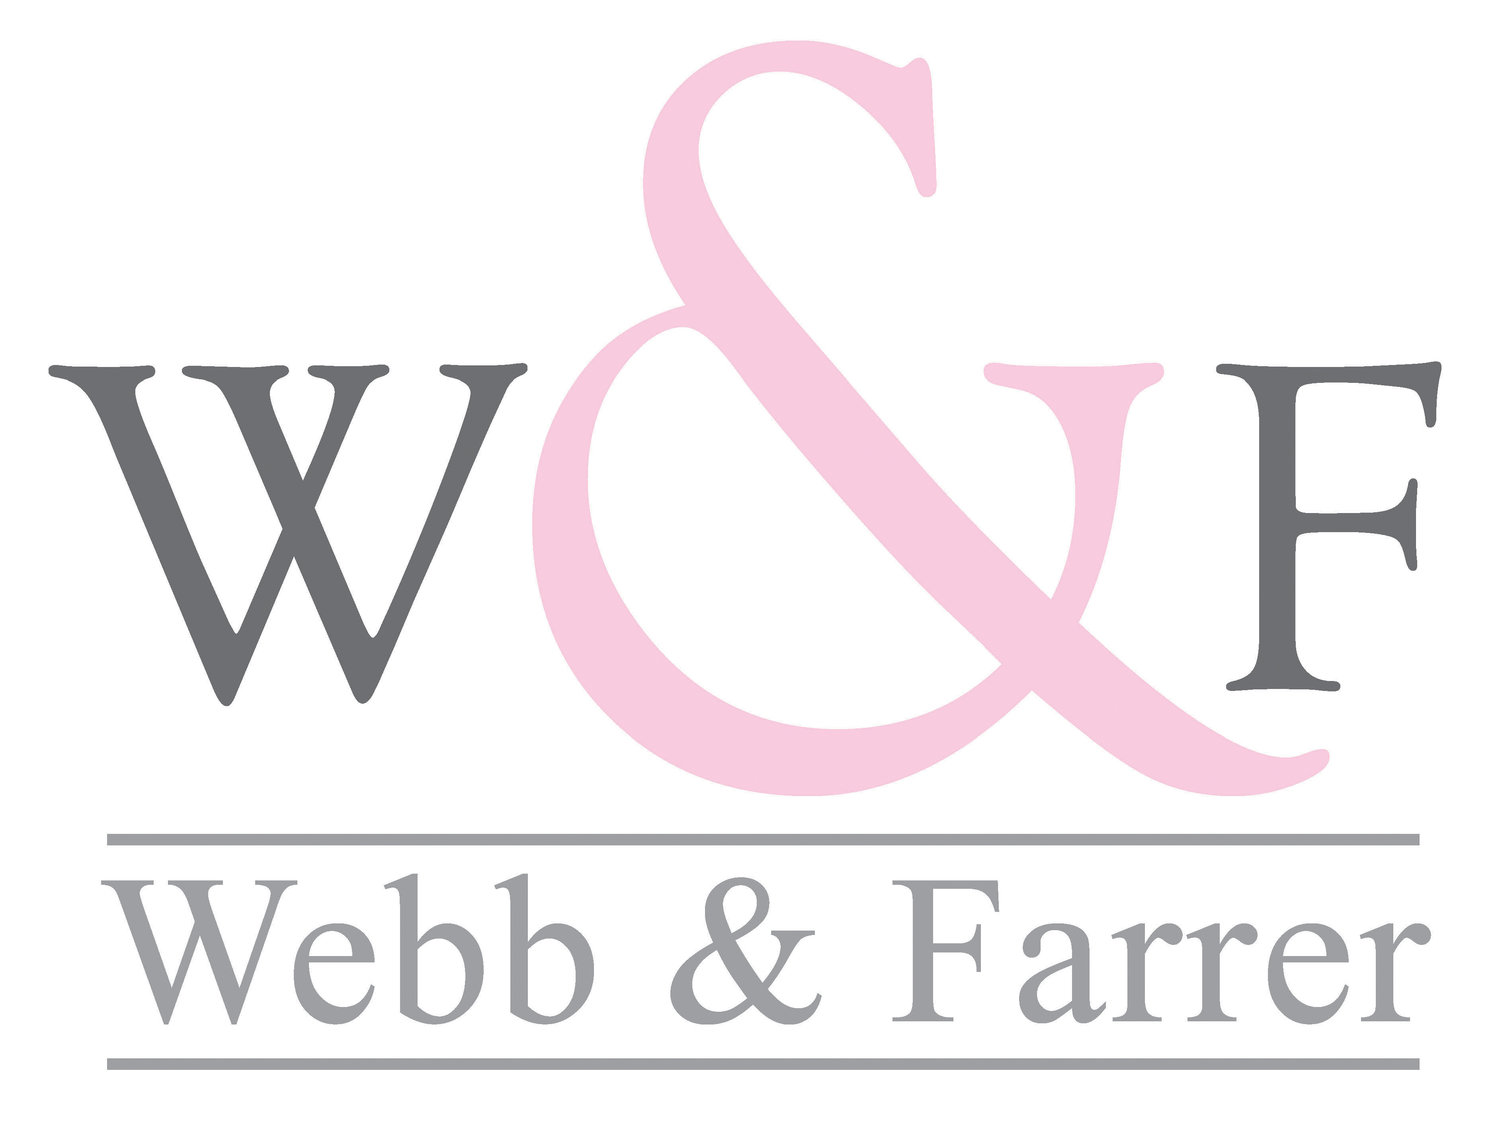 Webb and Farrer - Wedding Florist - Brighton, Sussex and the South East